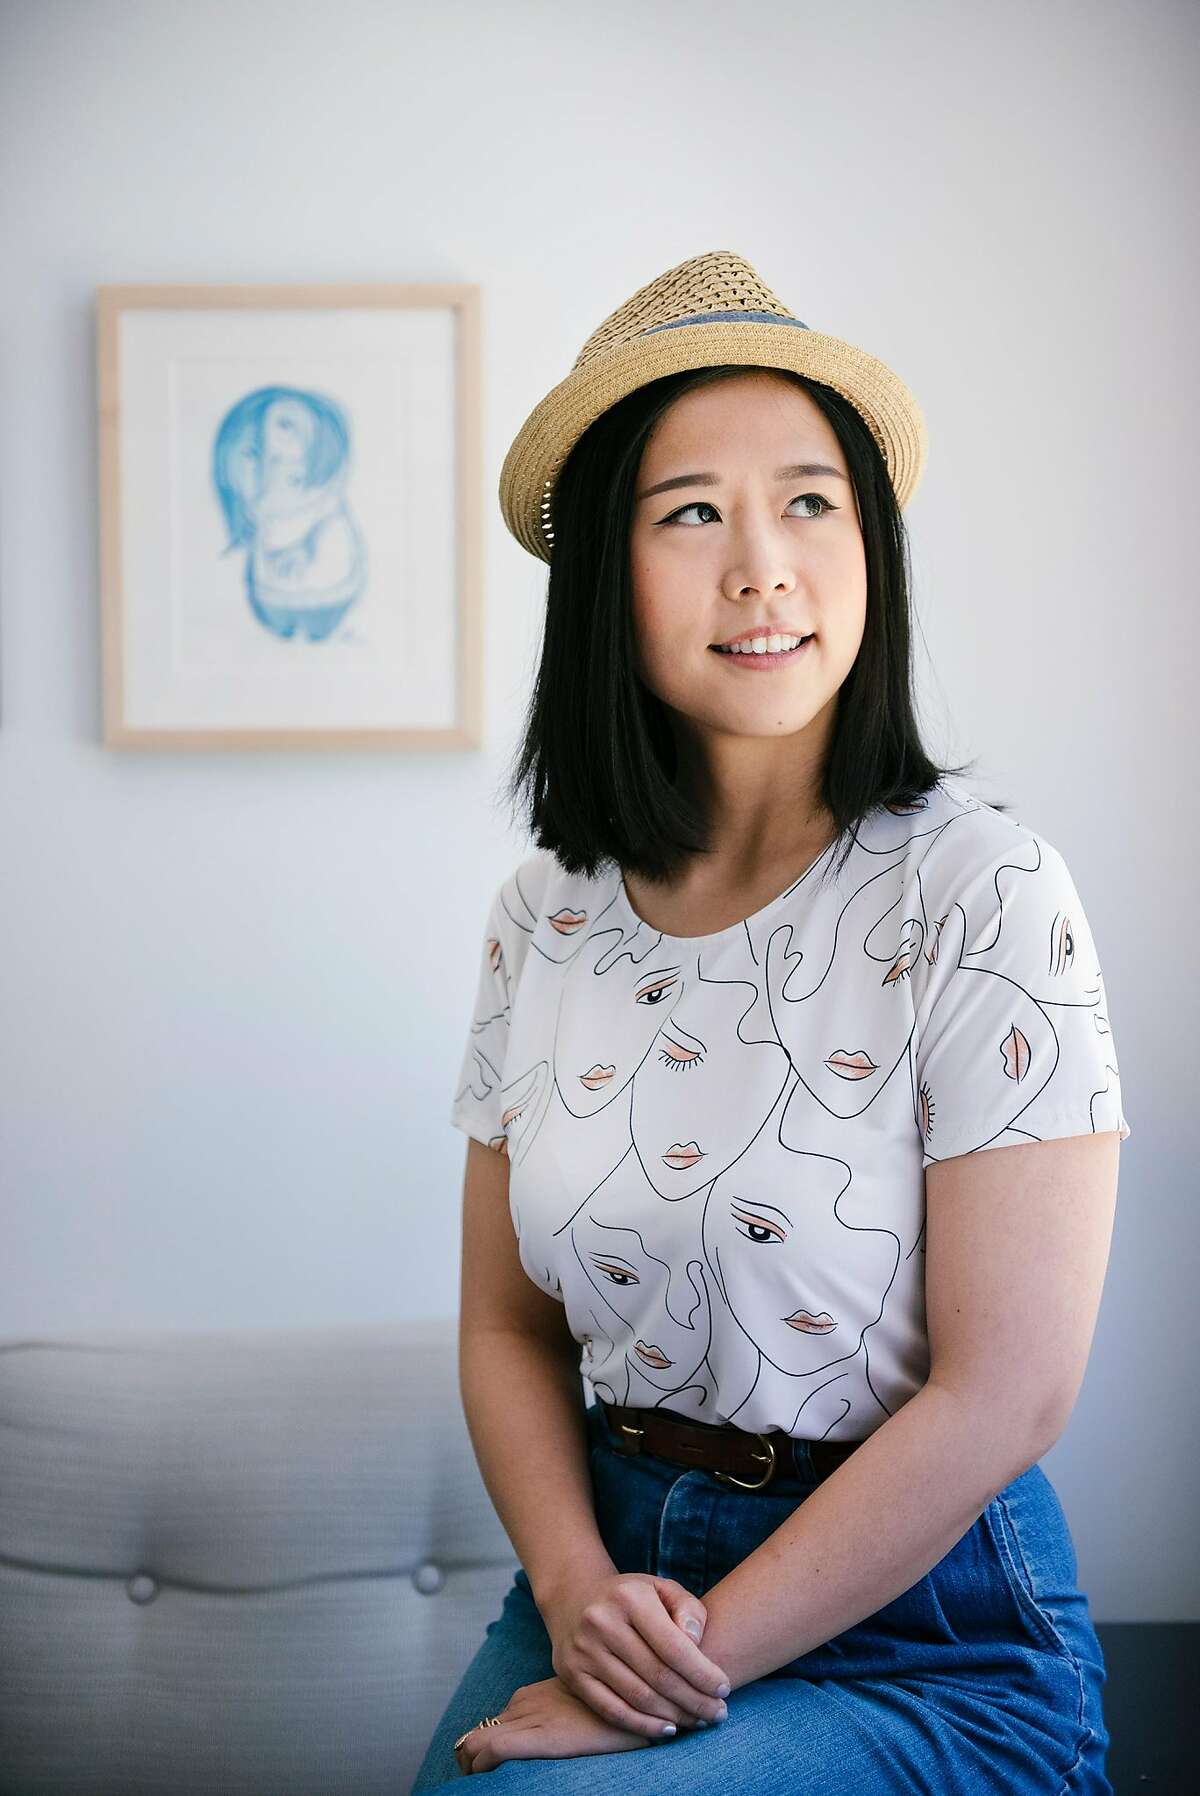 """Storyboard artist Domee Shi, who created Pixar�s new short, �Bao,� which is running in theaters before �Incredibles 2"""", poses for a portrait at Pixar Animation Studios in Emeryville, CA, on Monday June 4, 2018."""